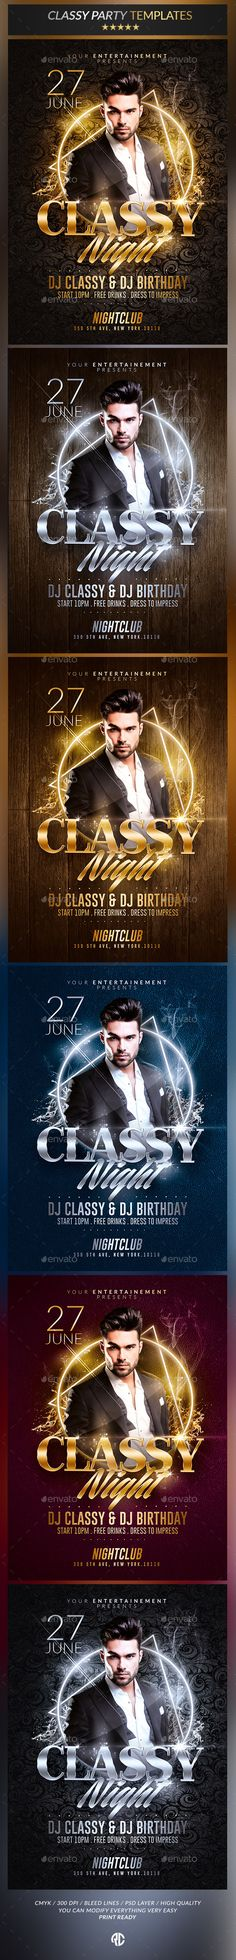 Classy Night Party   Psd Flyer Templates